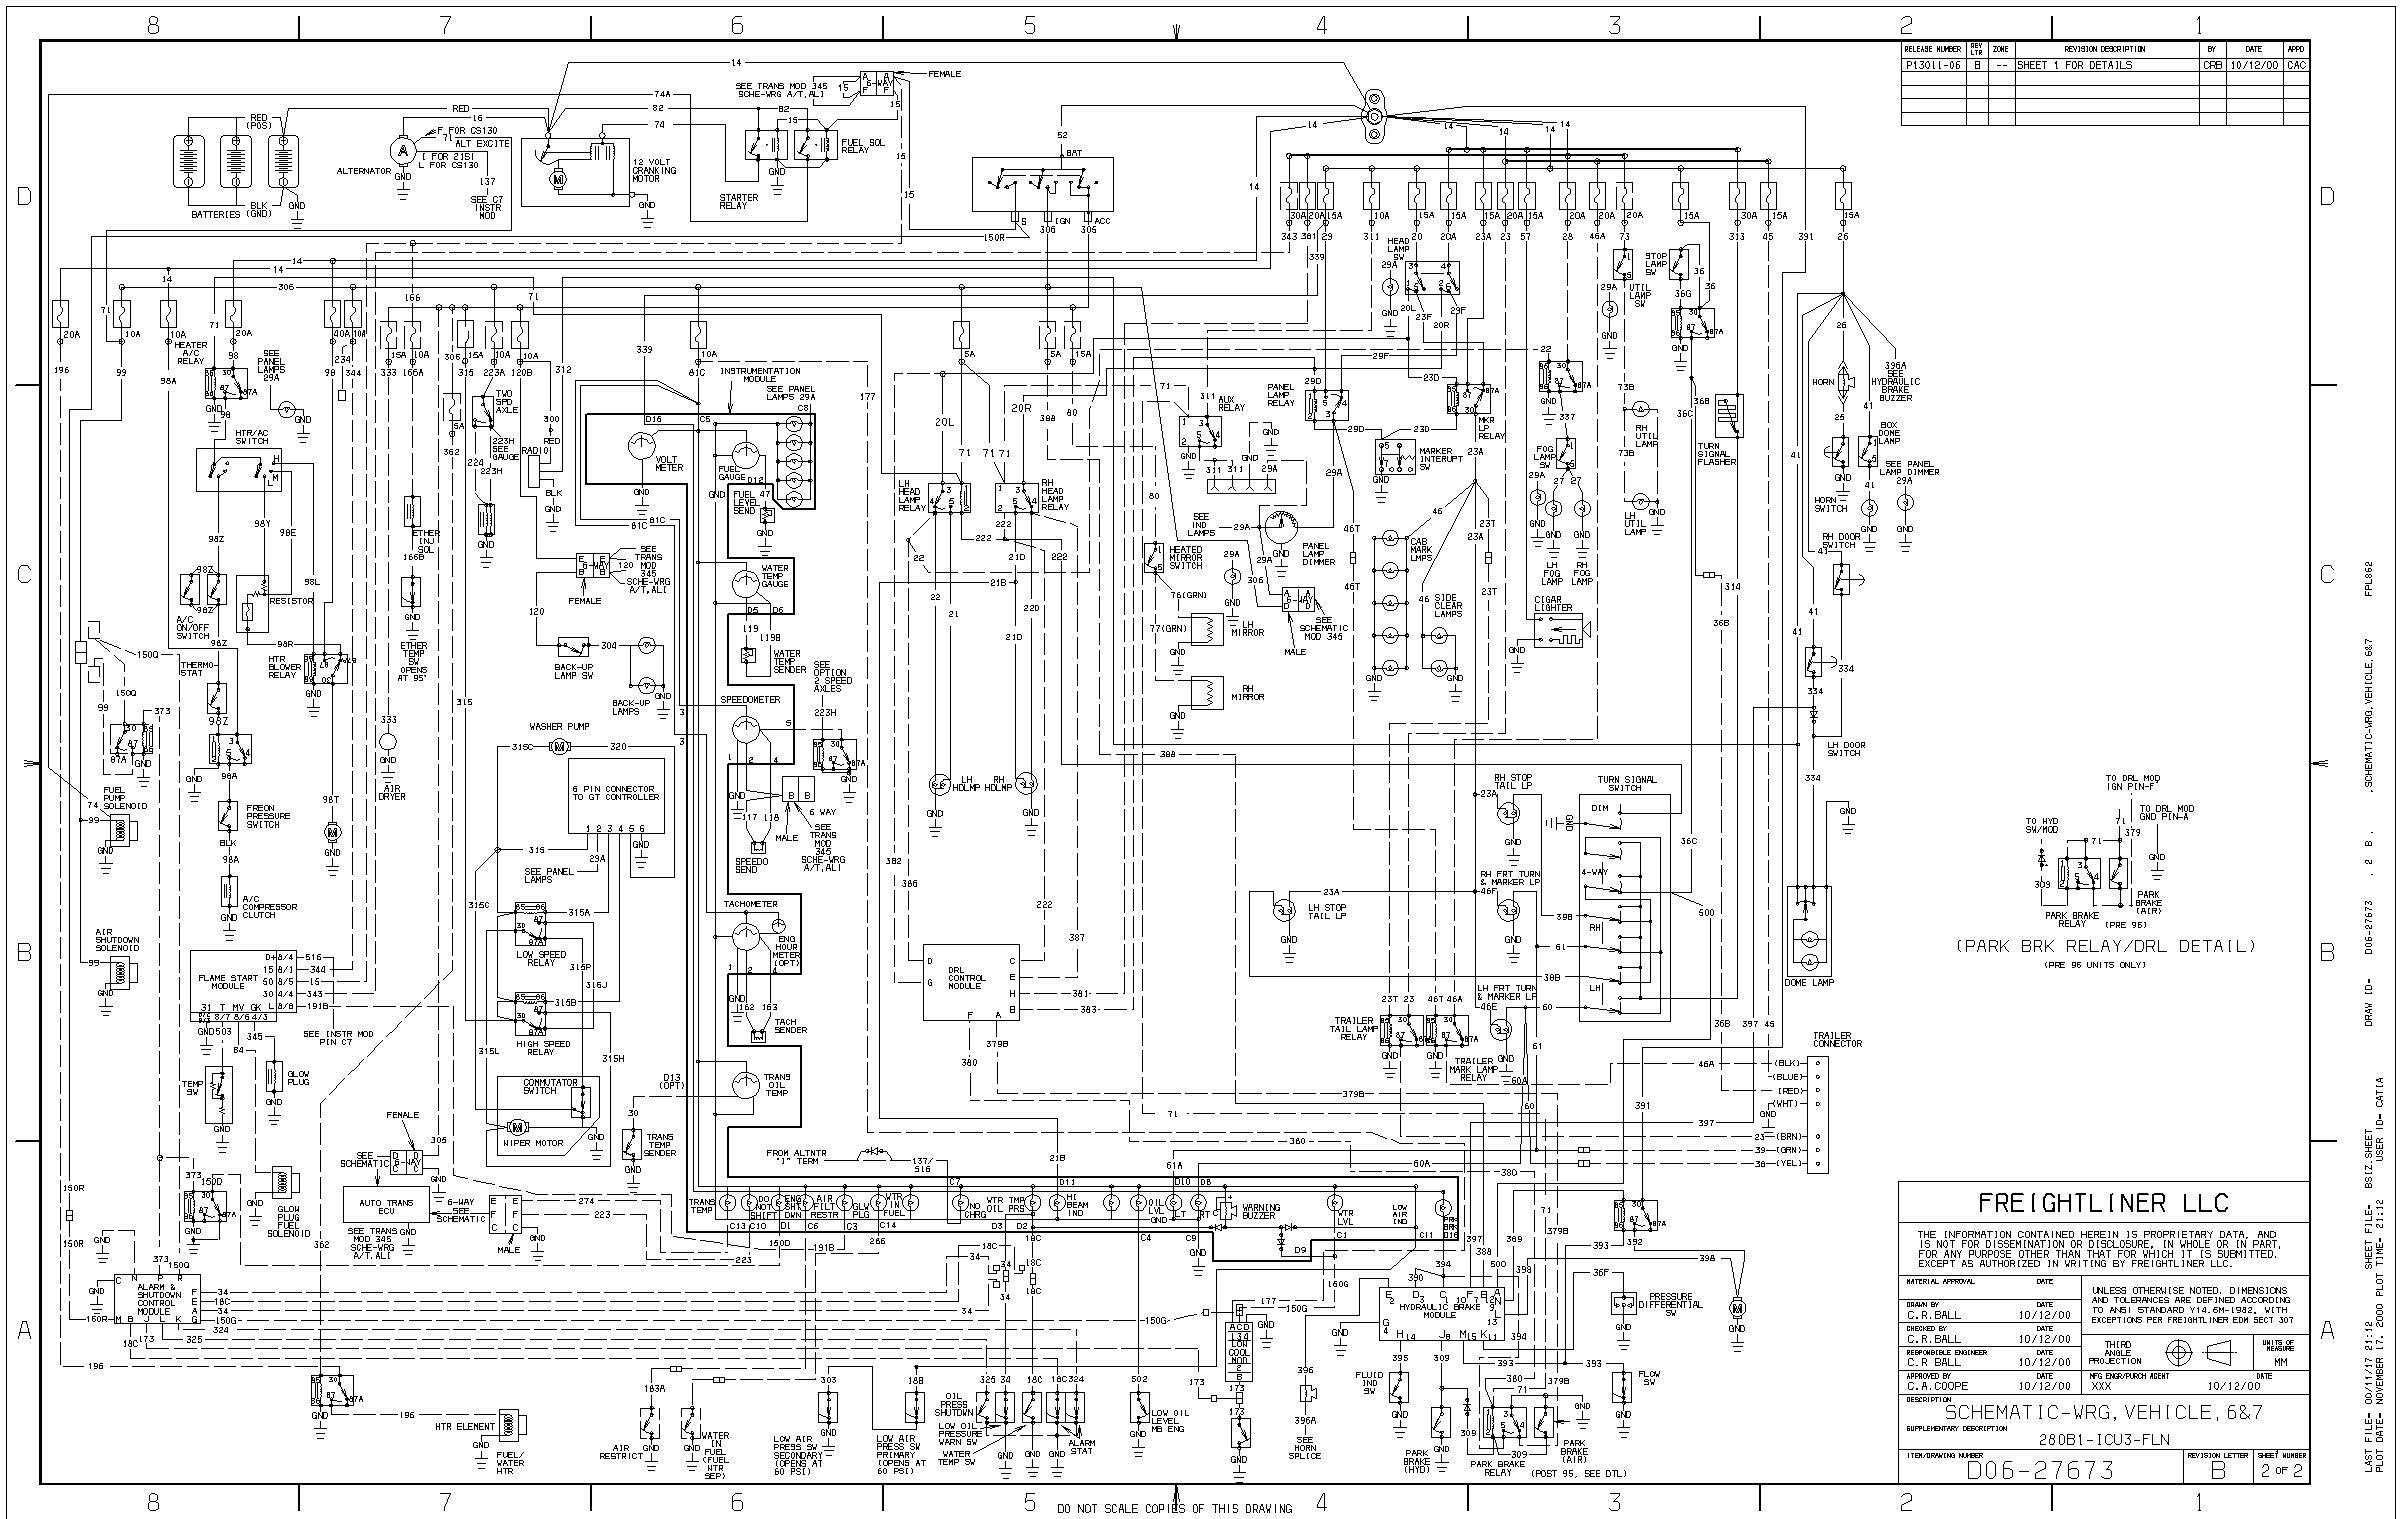 wiring diagram fl70 freightliner wiring diagram fl70 i have 2003 fl70 freightliner and i need a wiring diagram for